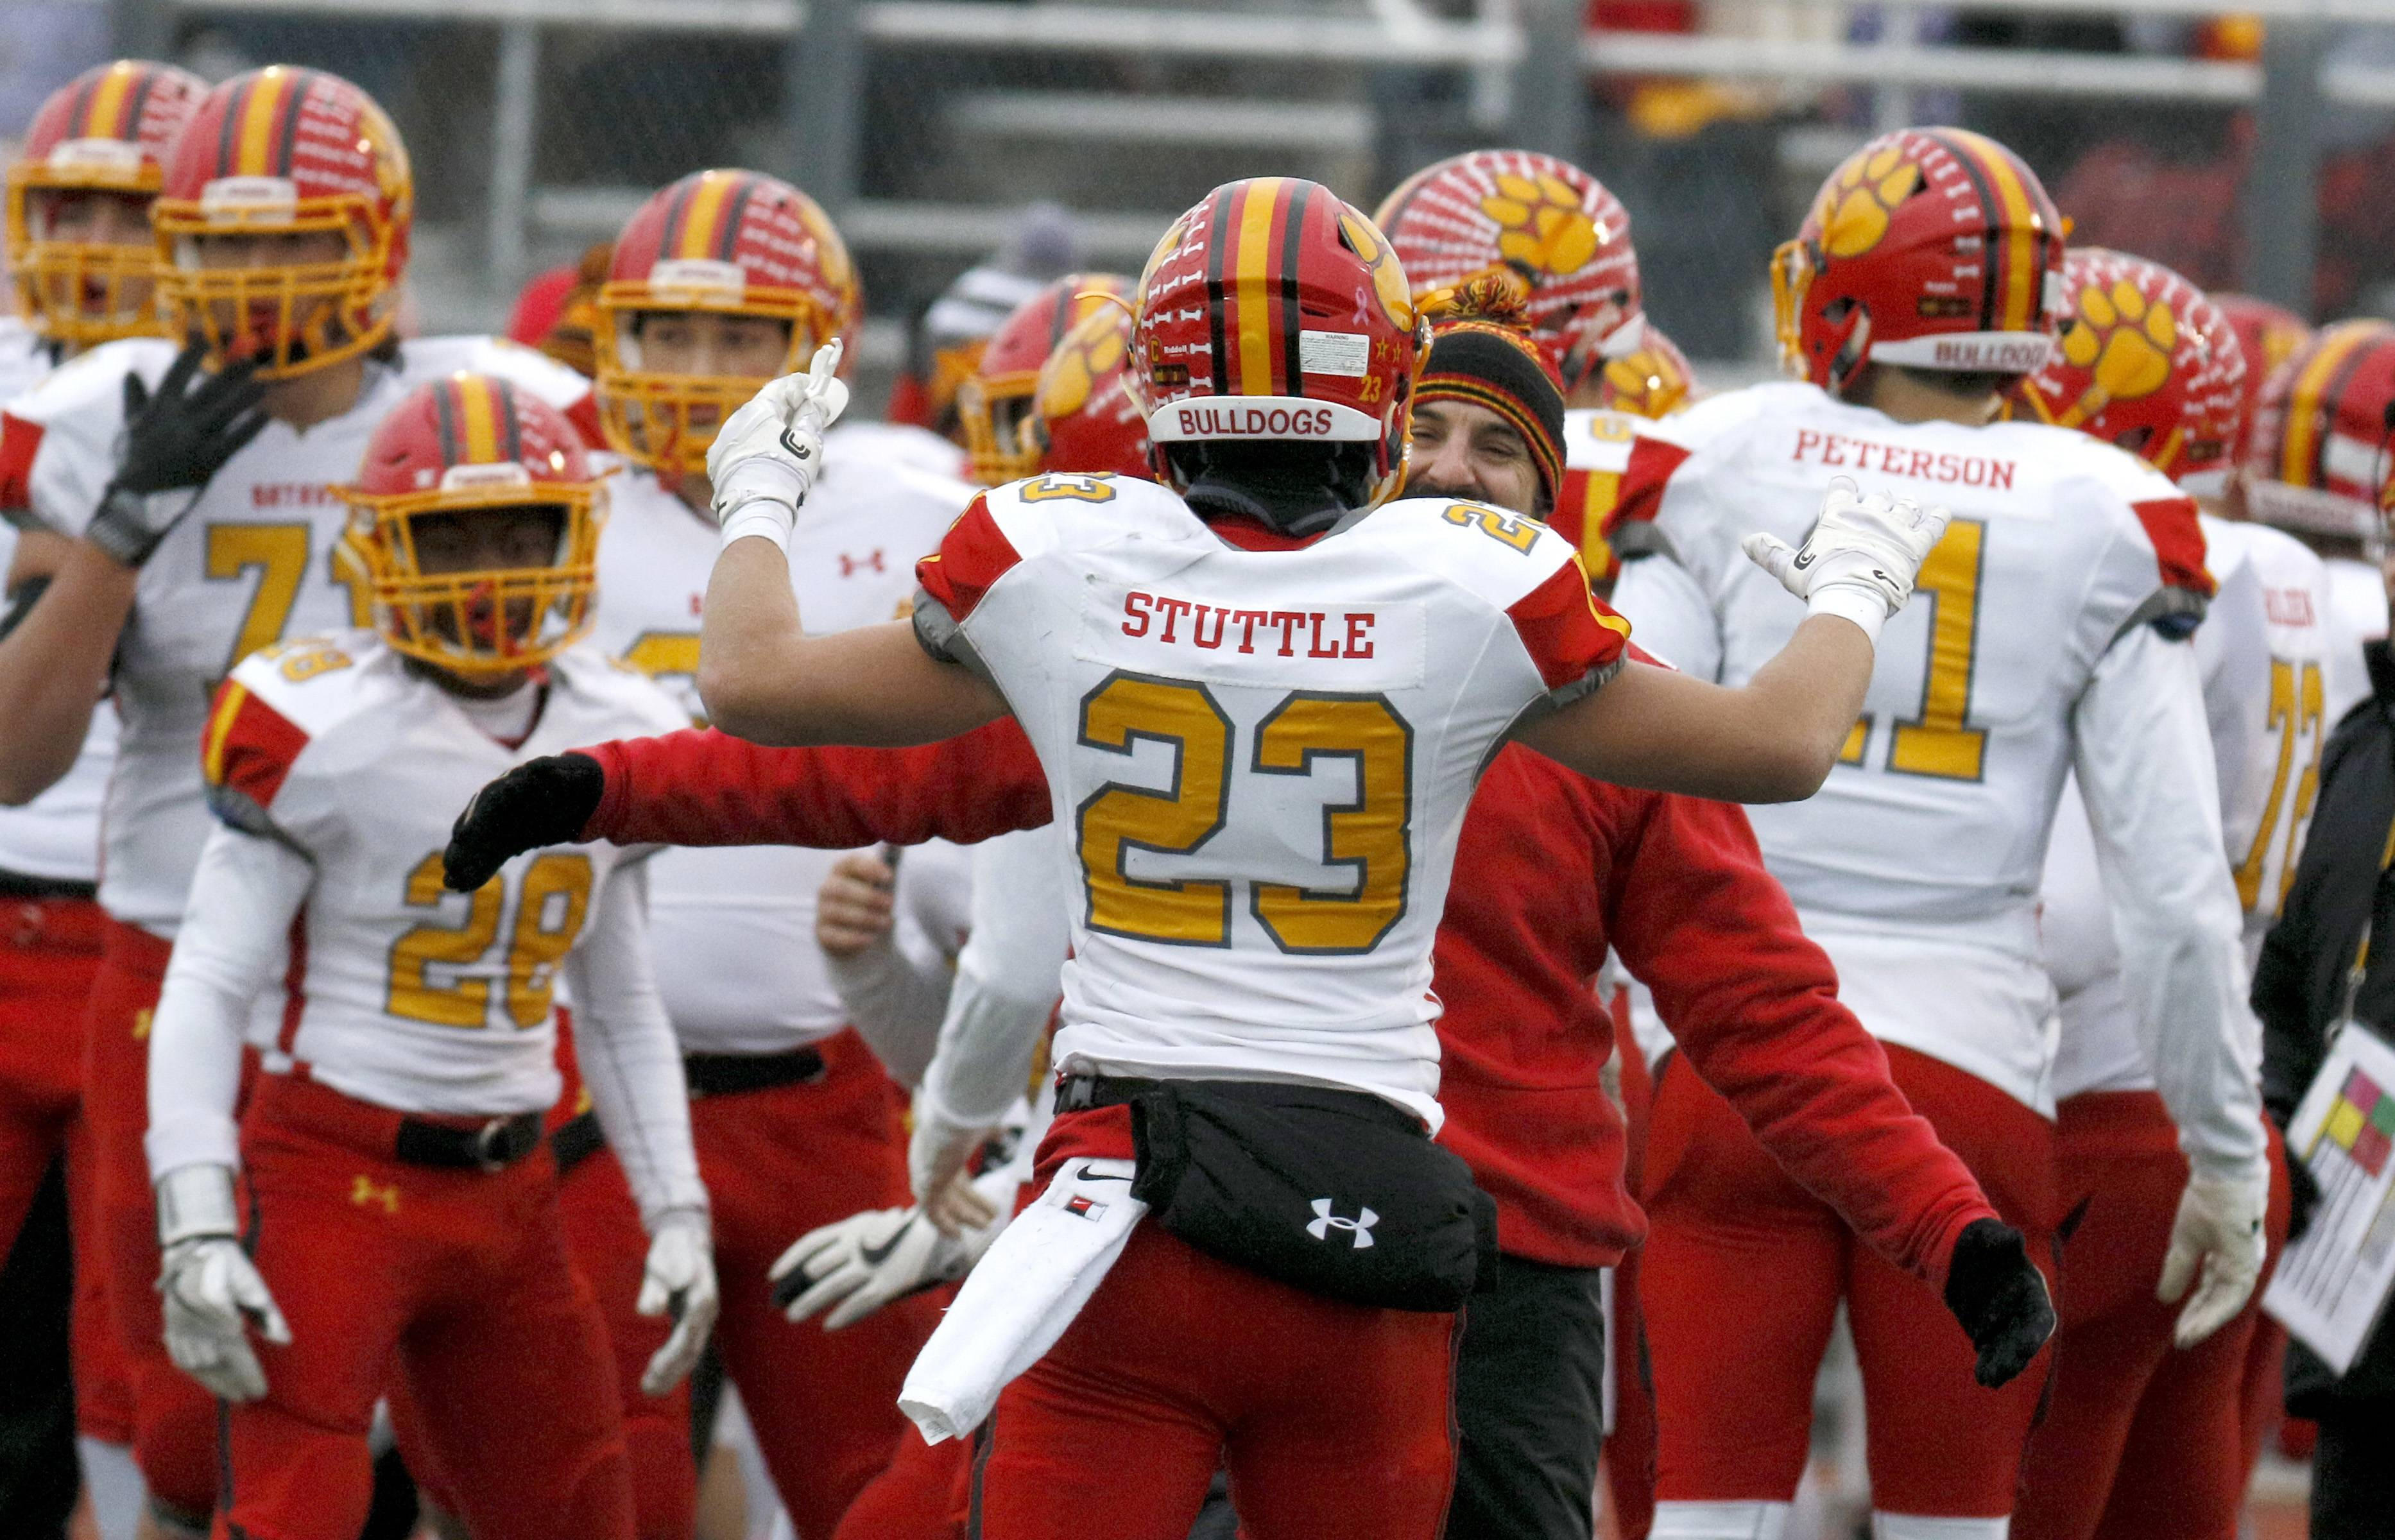 Batavia's Tommy Stuttle (23) returns to the bench after a second half interception against Lincoln-Way West during Class 7A football quarterfinal action in New Lenox.